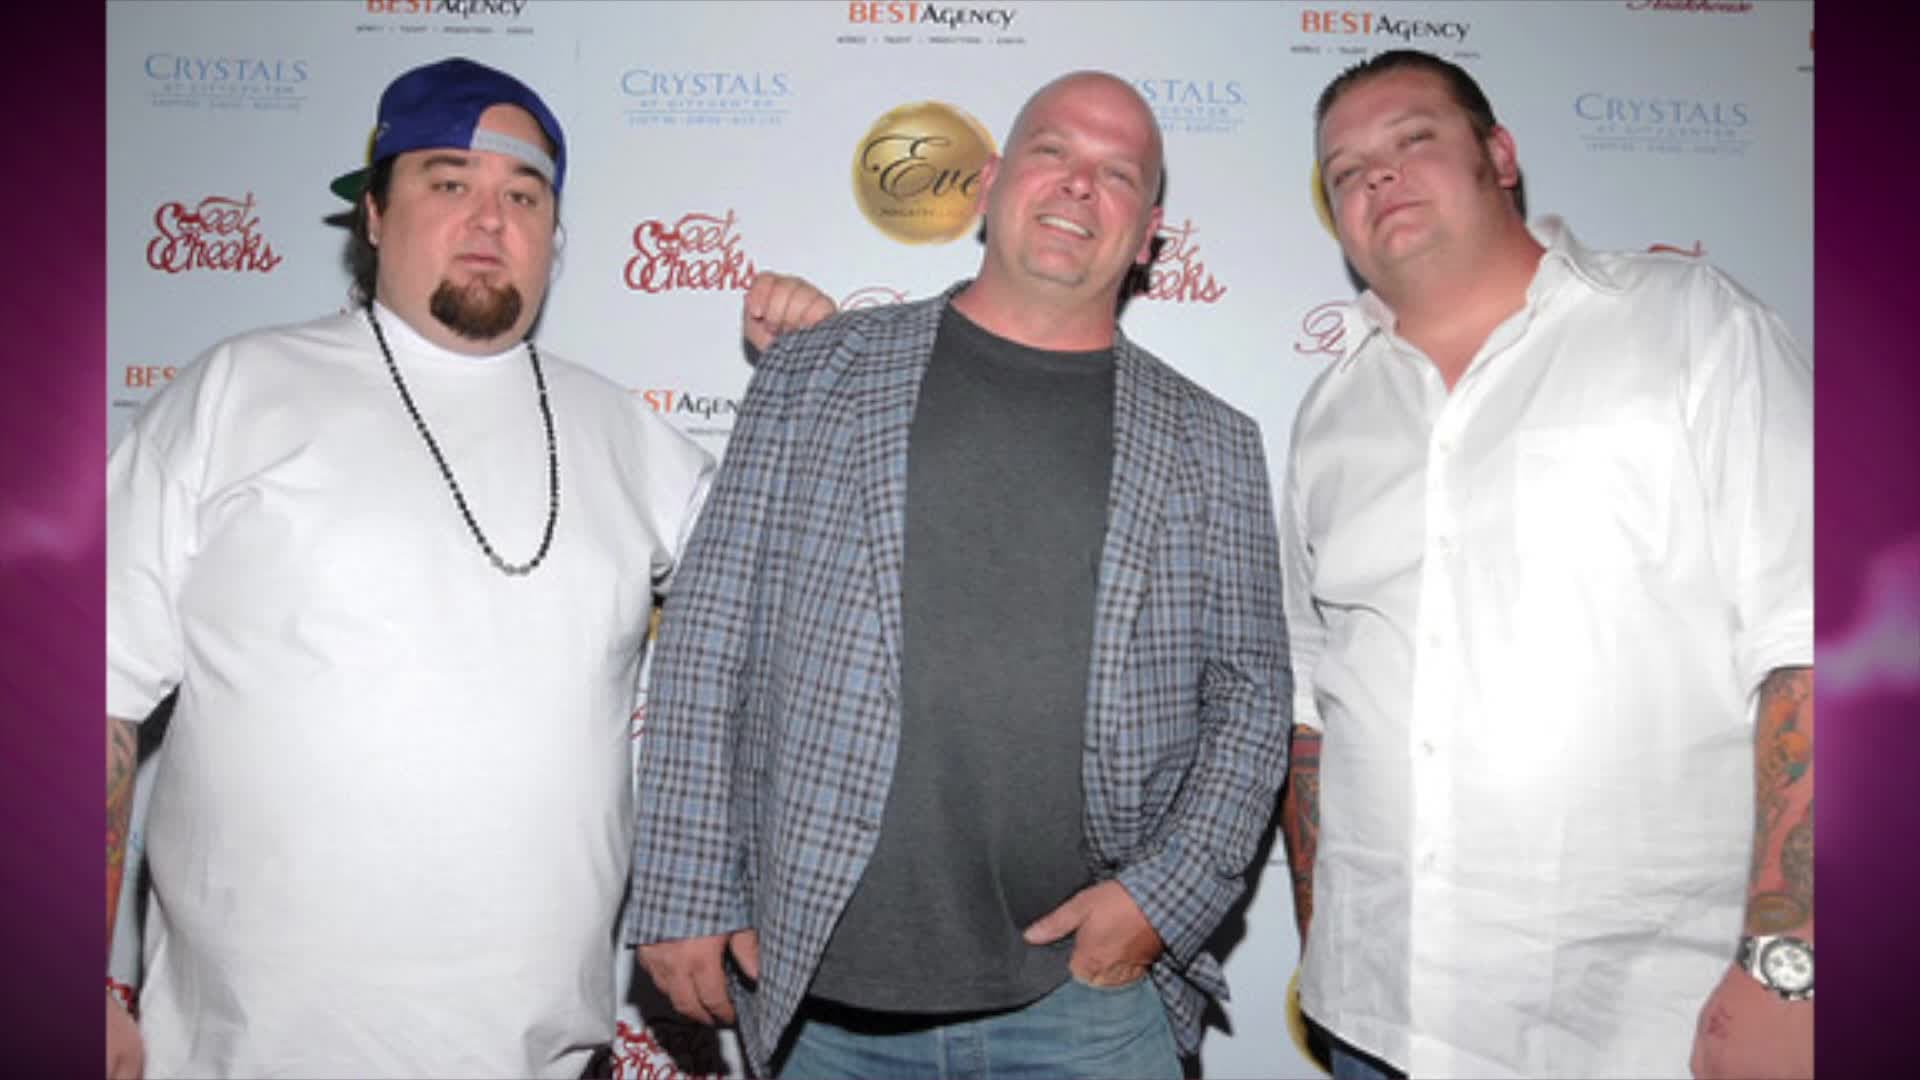 Hoax Debunked By Pawn Stars Cast Member